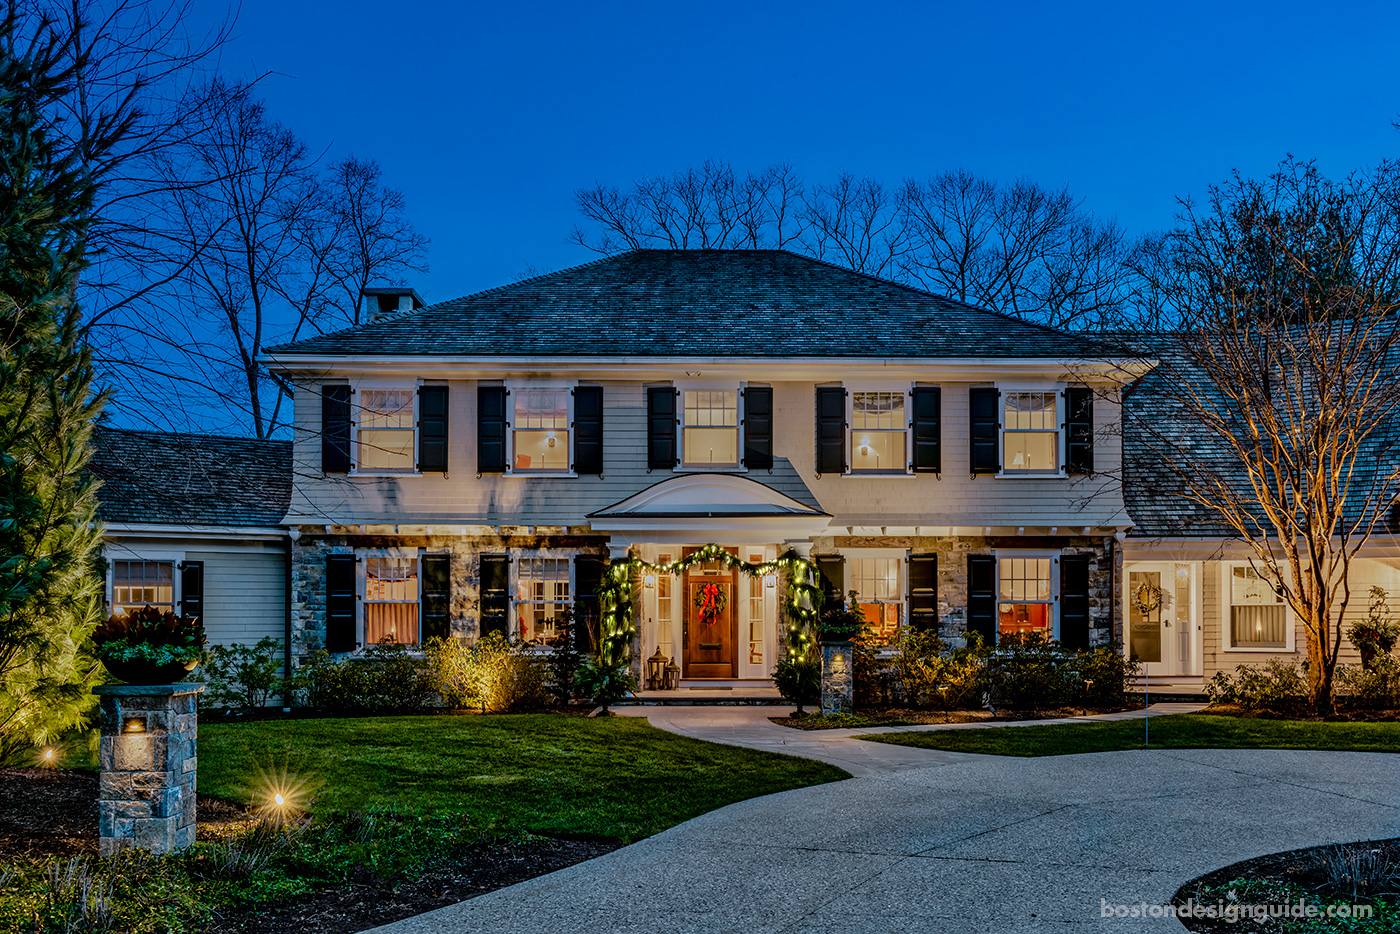 High-end holiday decorations in a New England home by R.P. Marzilli & Co.